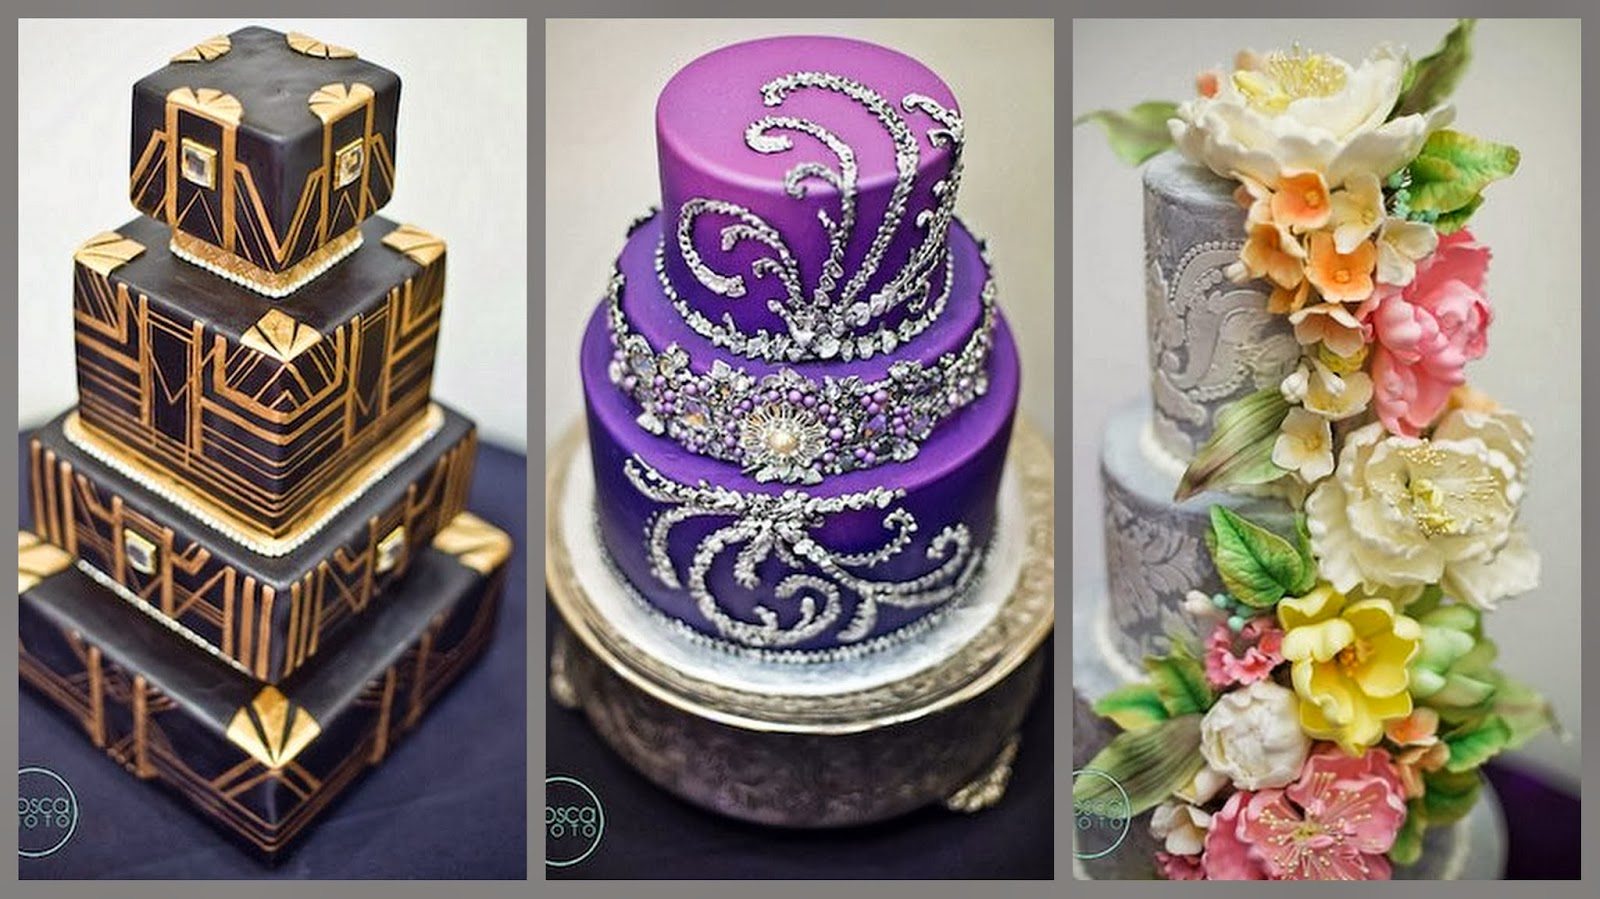 Artisan Cake Company : Marry ME! Event Blog: Marry ME! 2014 Featured Cake ...